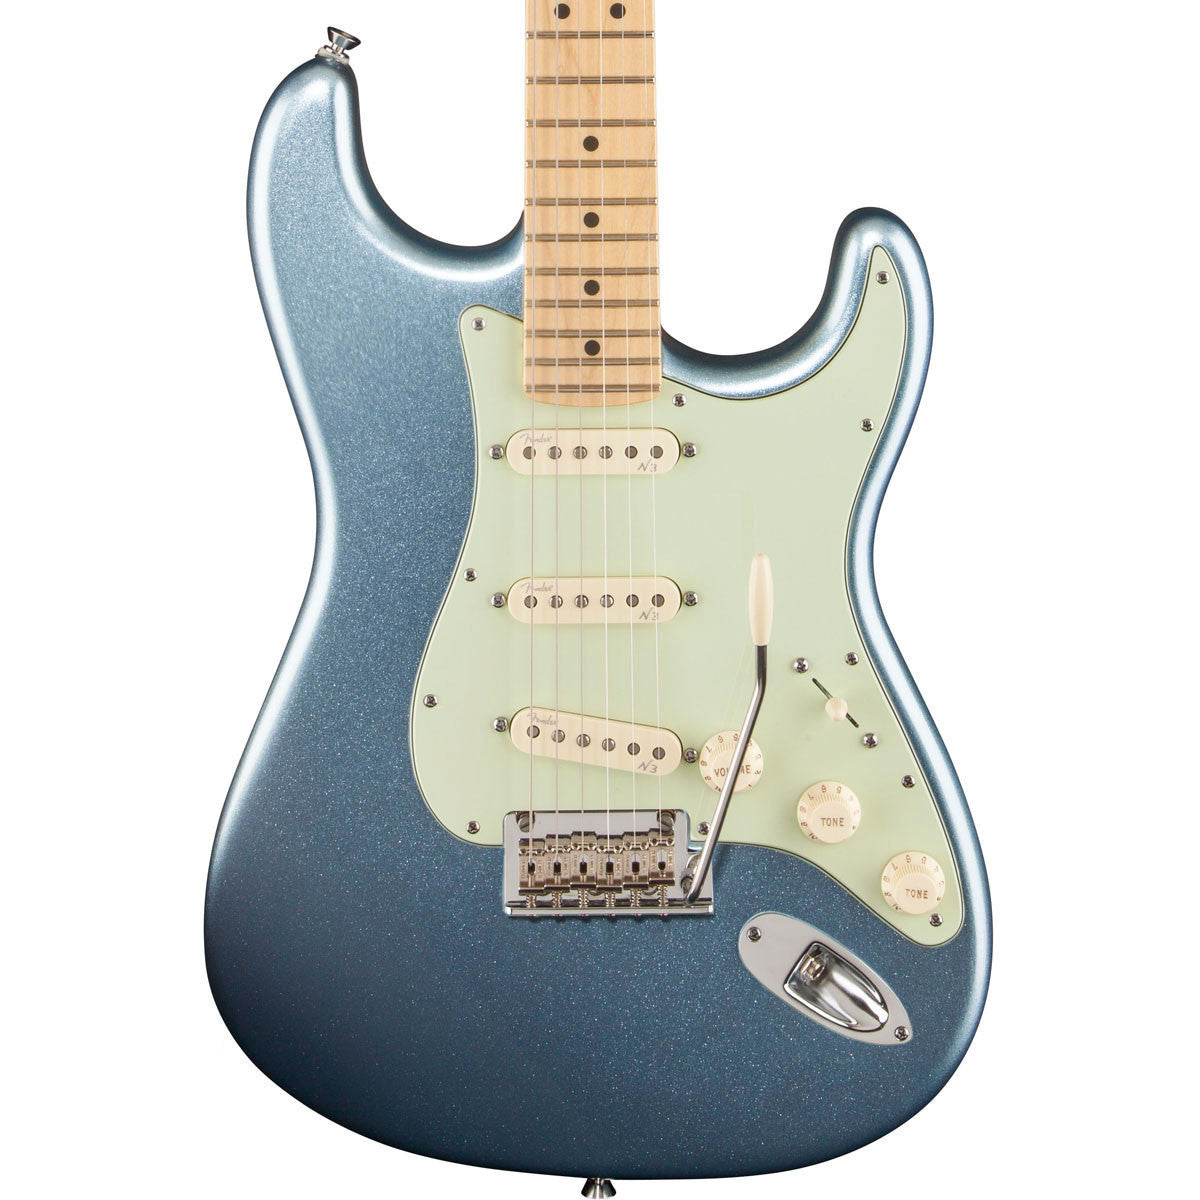 Fender American Deluxe Stratocaster Plus - Maple - Mystic Ice Blue - Vintage Guitar Boutique - 1